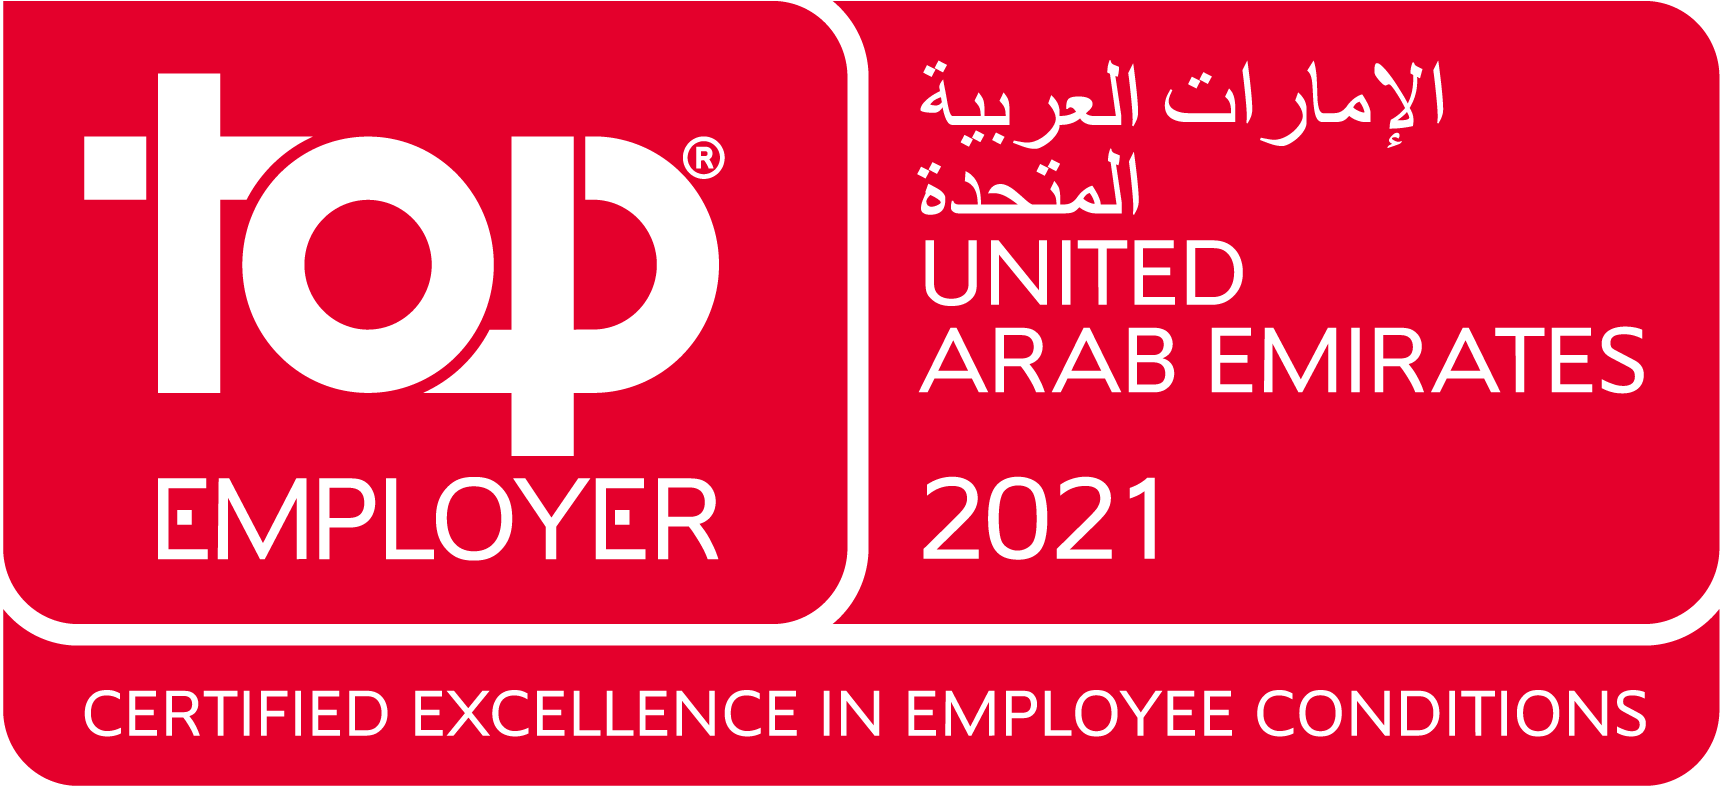 Top employers 2021